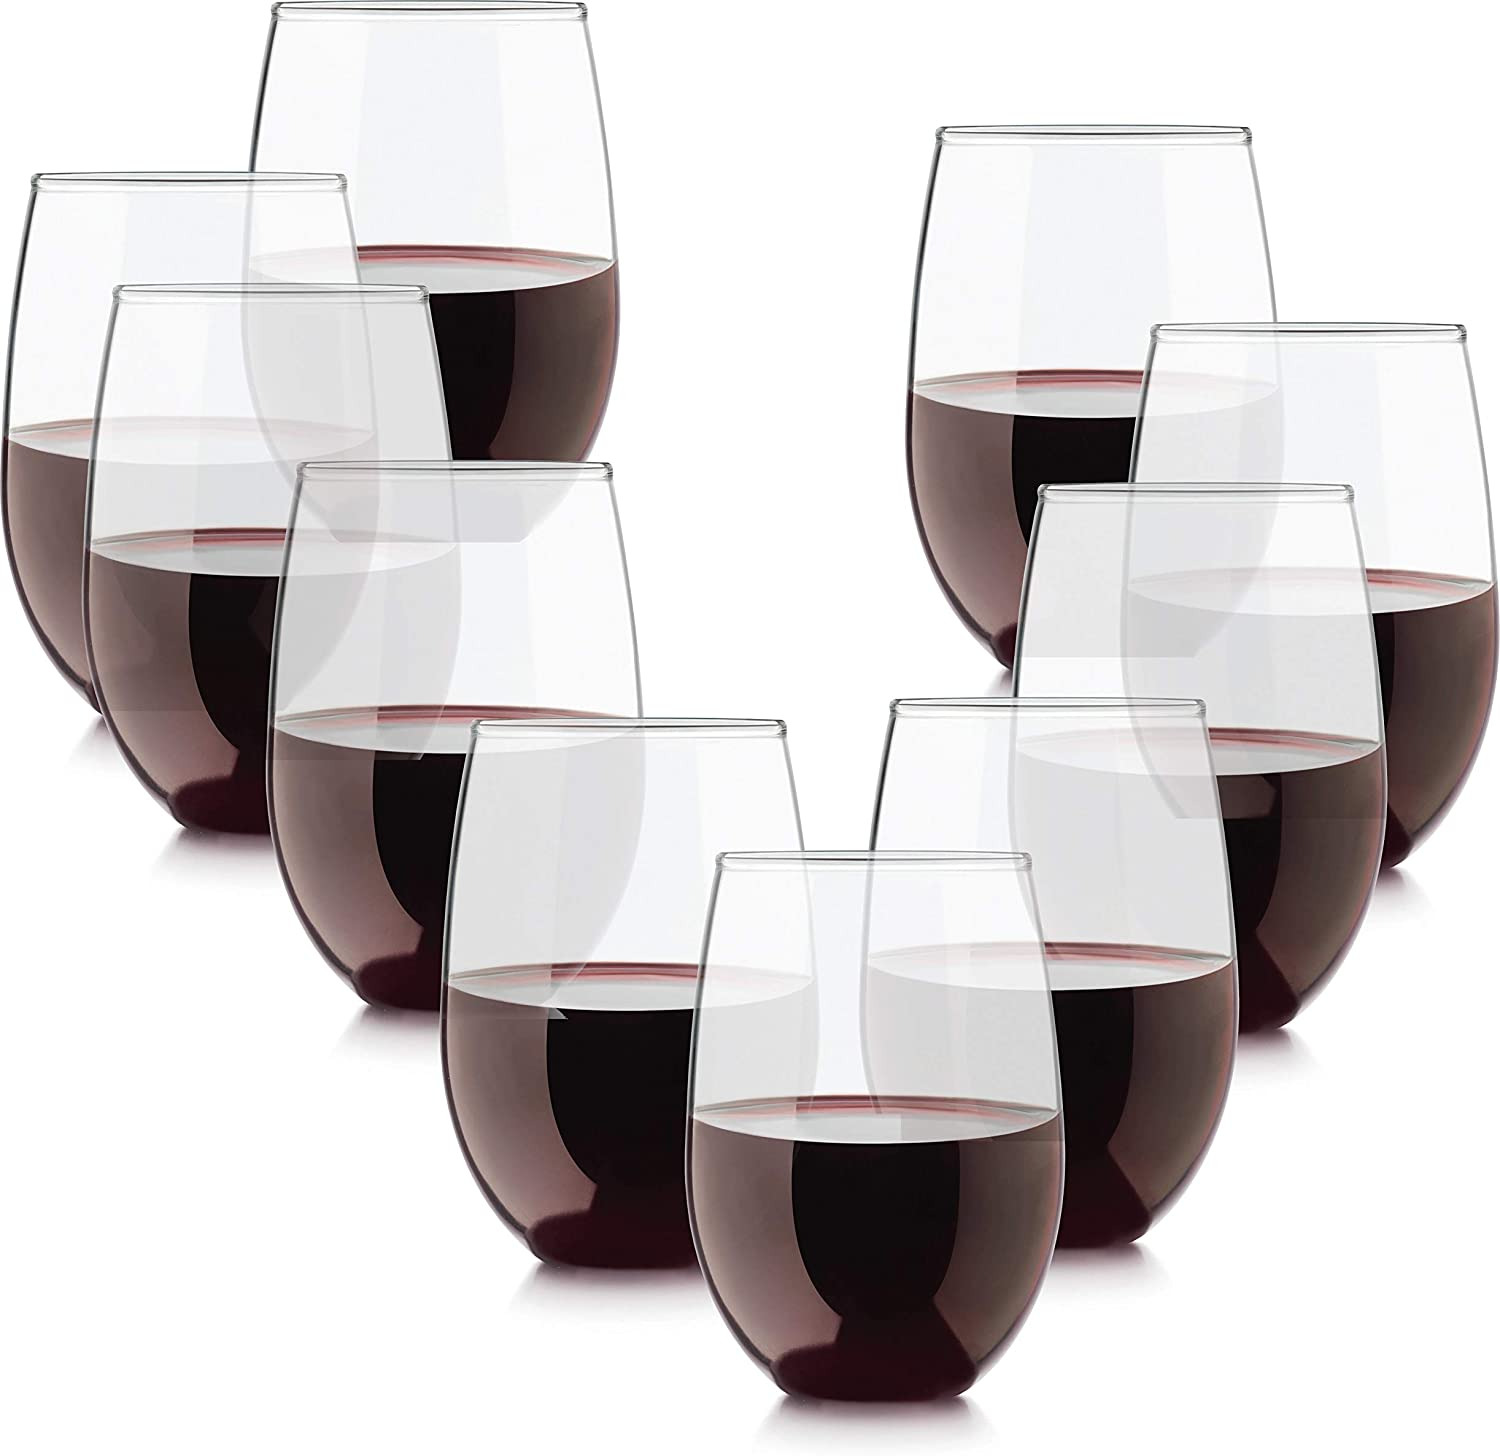 Circleware 44577 Twilight Huge Set of 10 Stemless Wine, Glass Entertainment Kitchen Glassware for Water, Liquor, Whiskey & All Drinking Beverages, Lead Free, 15 oz